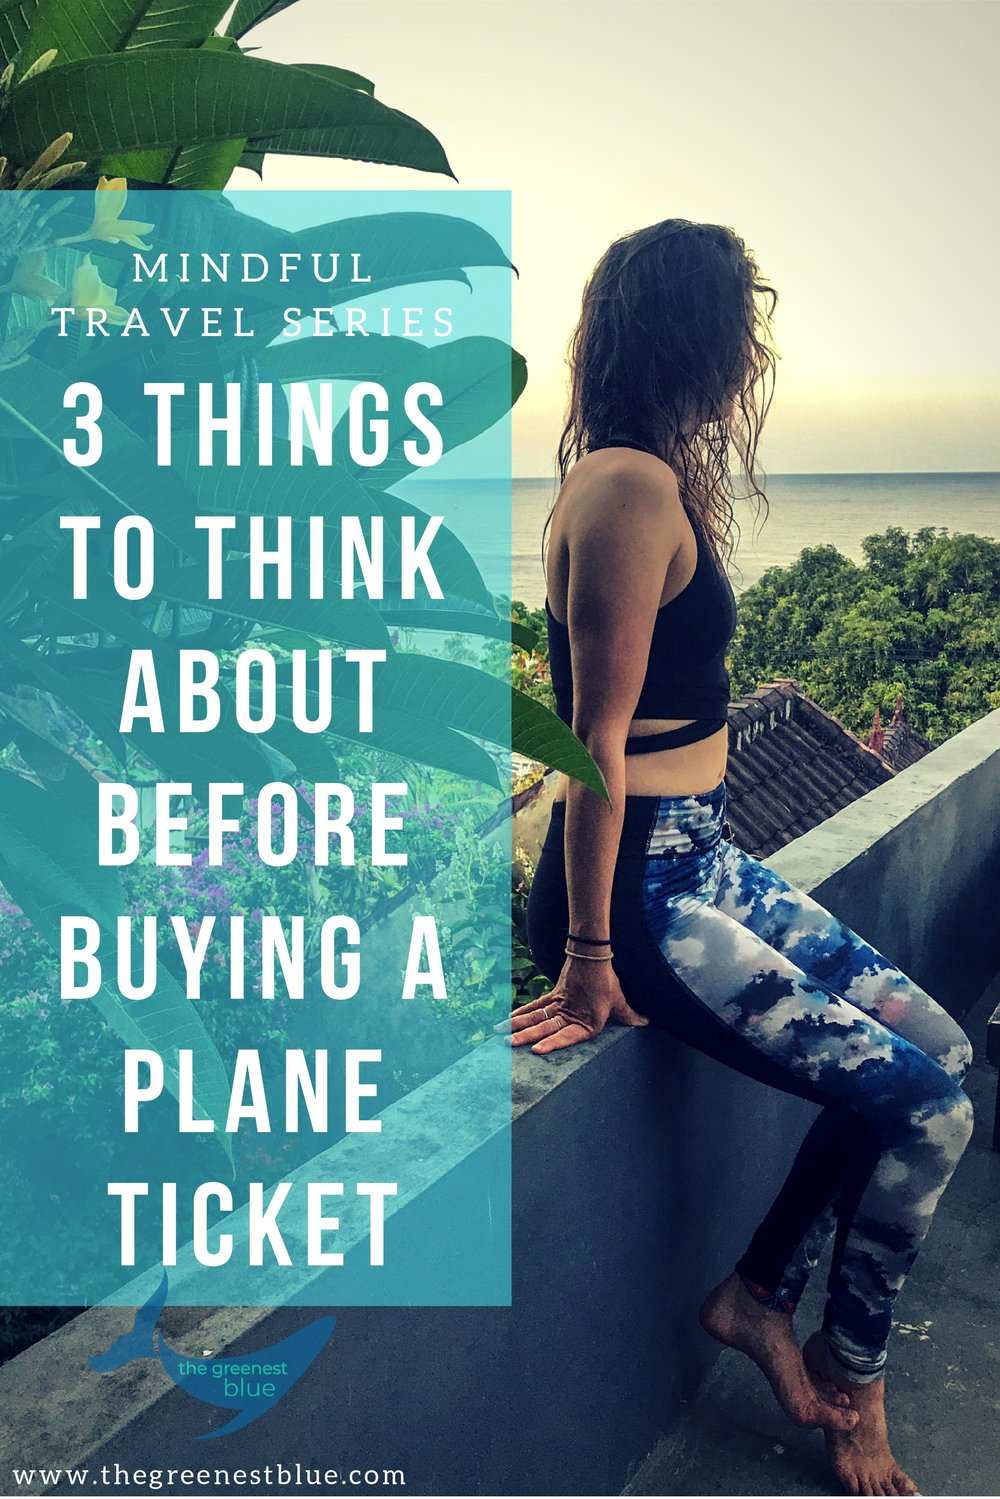 Mindful Travel Series on  thegreenestblue.com . Take responsibility for your wanderlust and be a respectful, mindful traveler. We can all do our part! Read more on the blog.